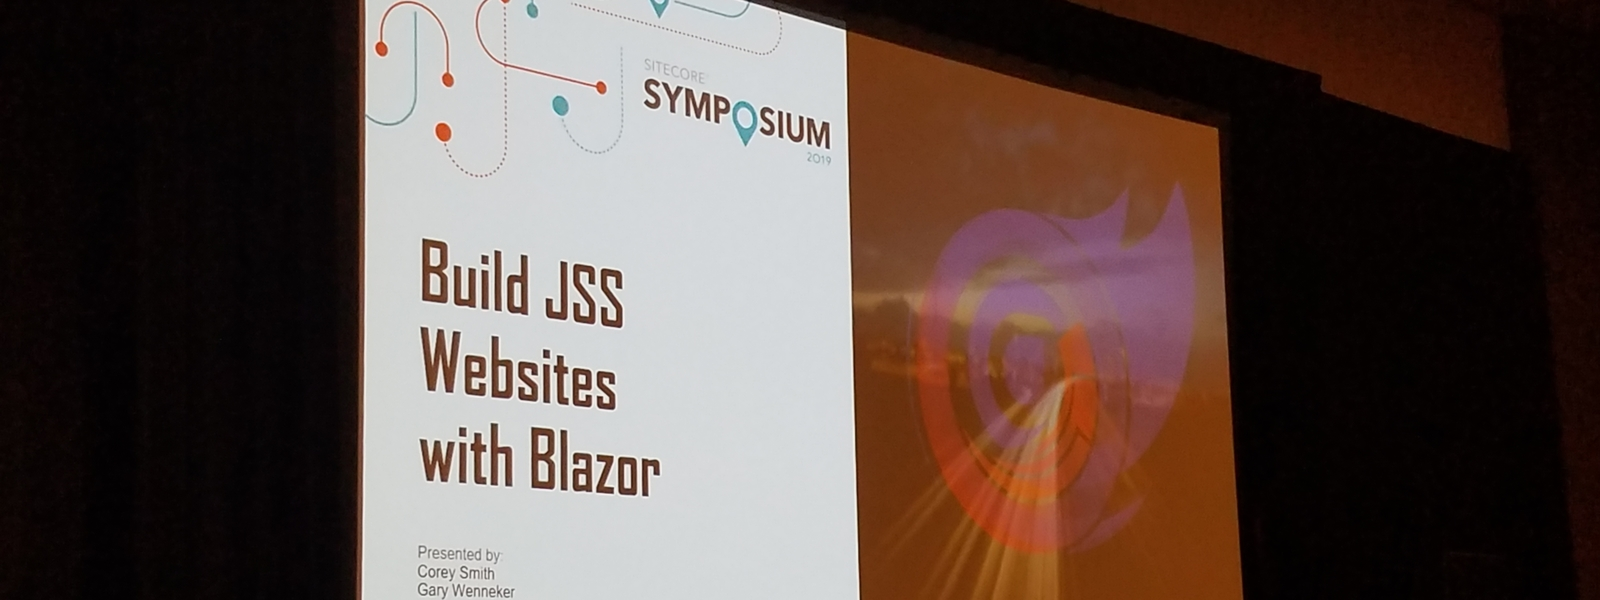 Sitecore Symposium JSS Session